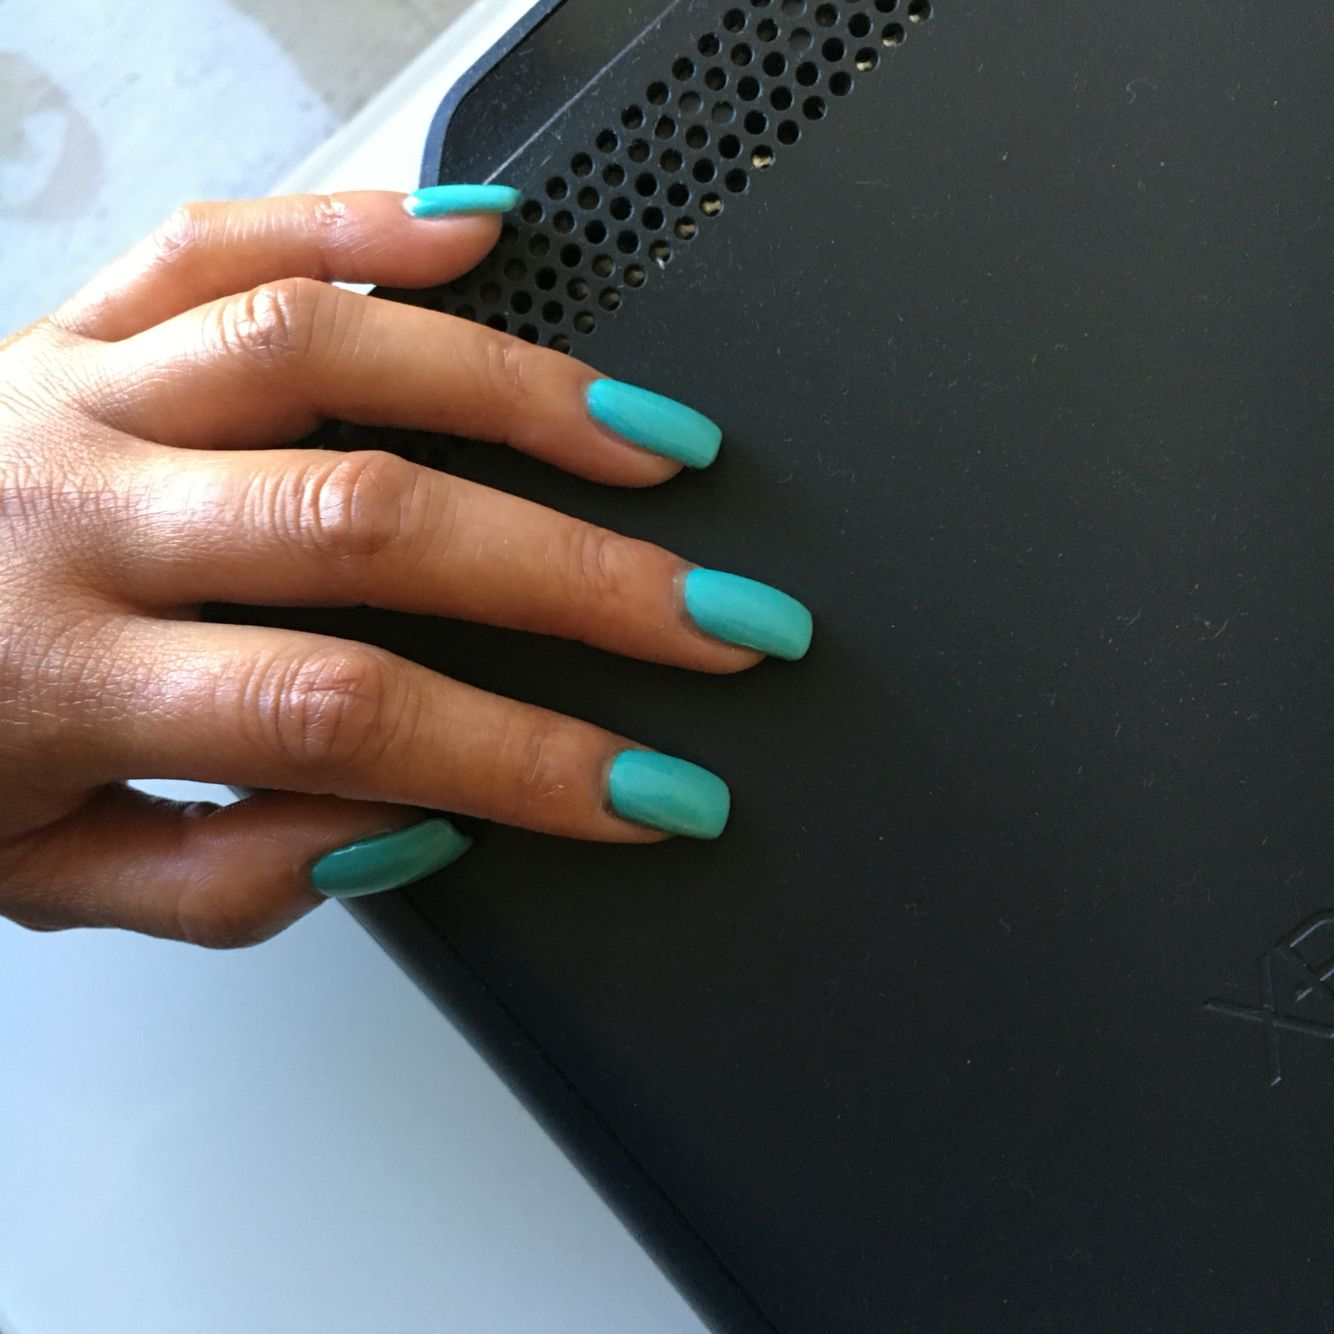 Squoval shaped acrylic gel nails in cyan